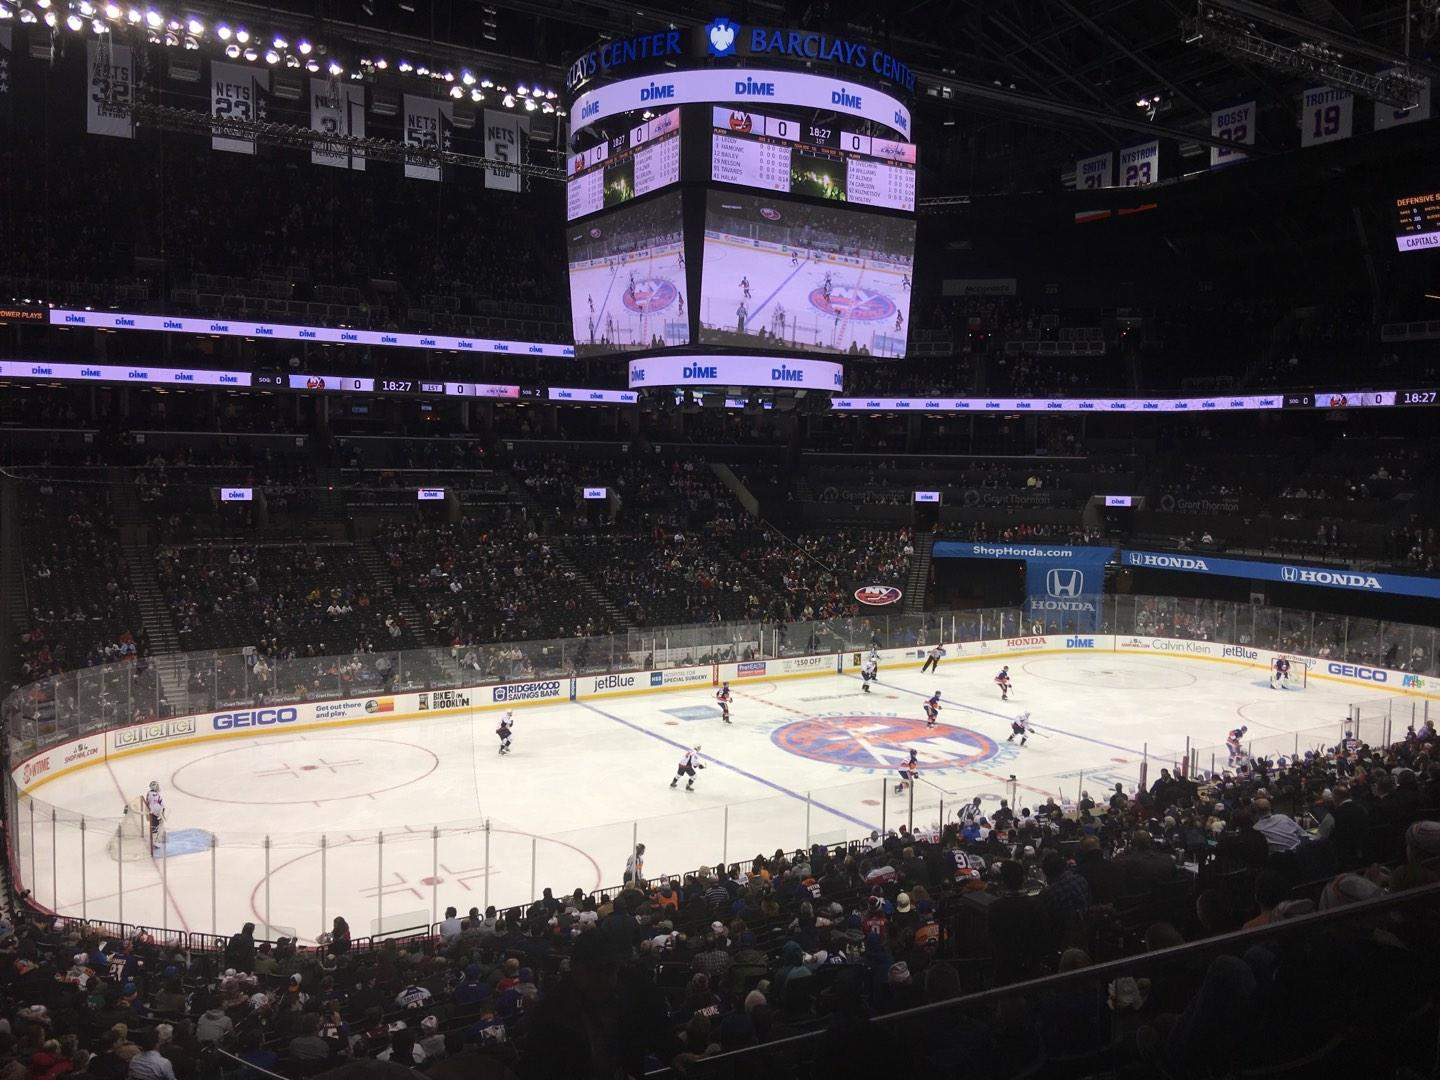 Barclays Center Section 111 Row 9 Seat 5